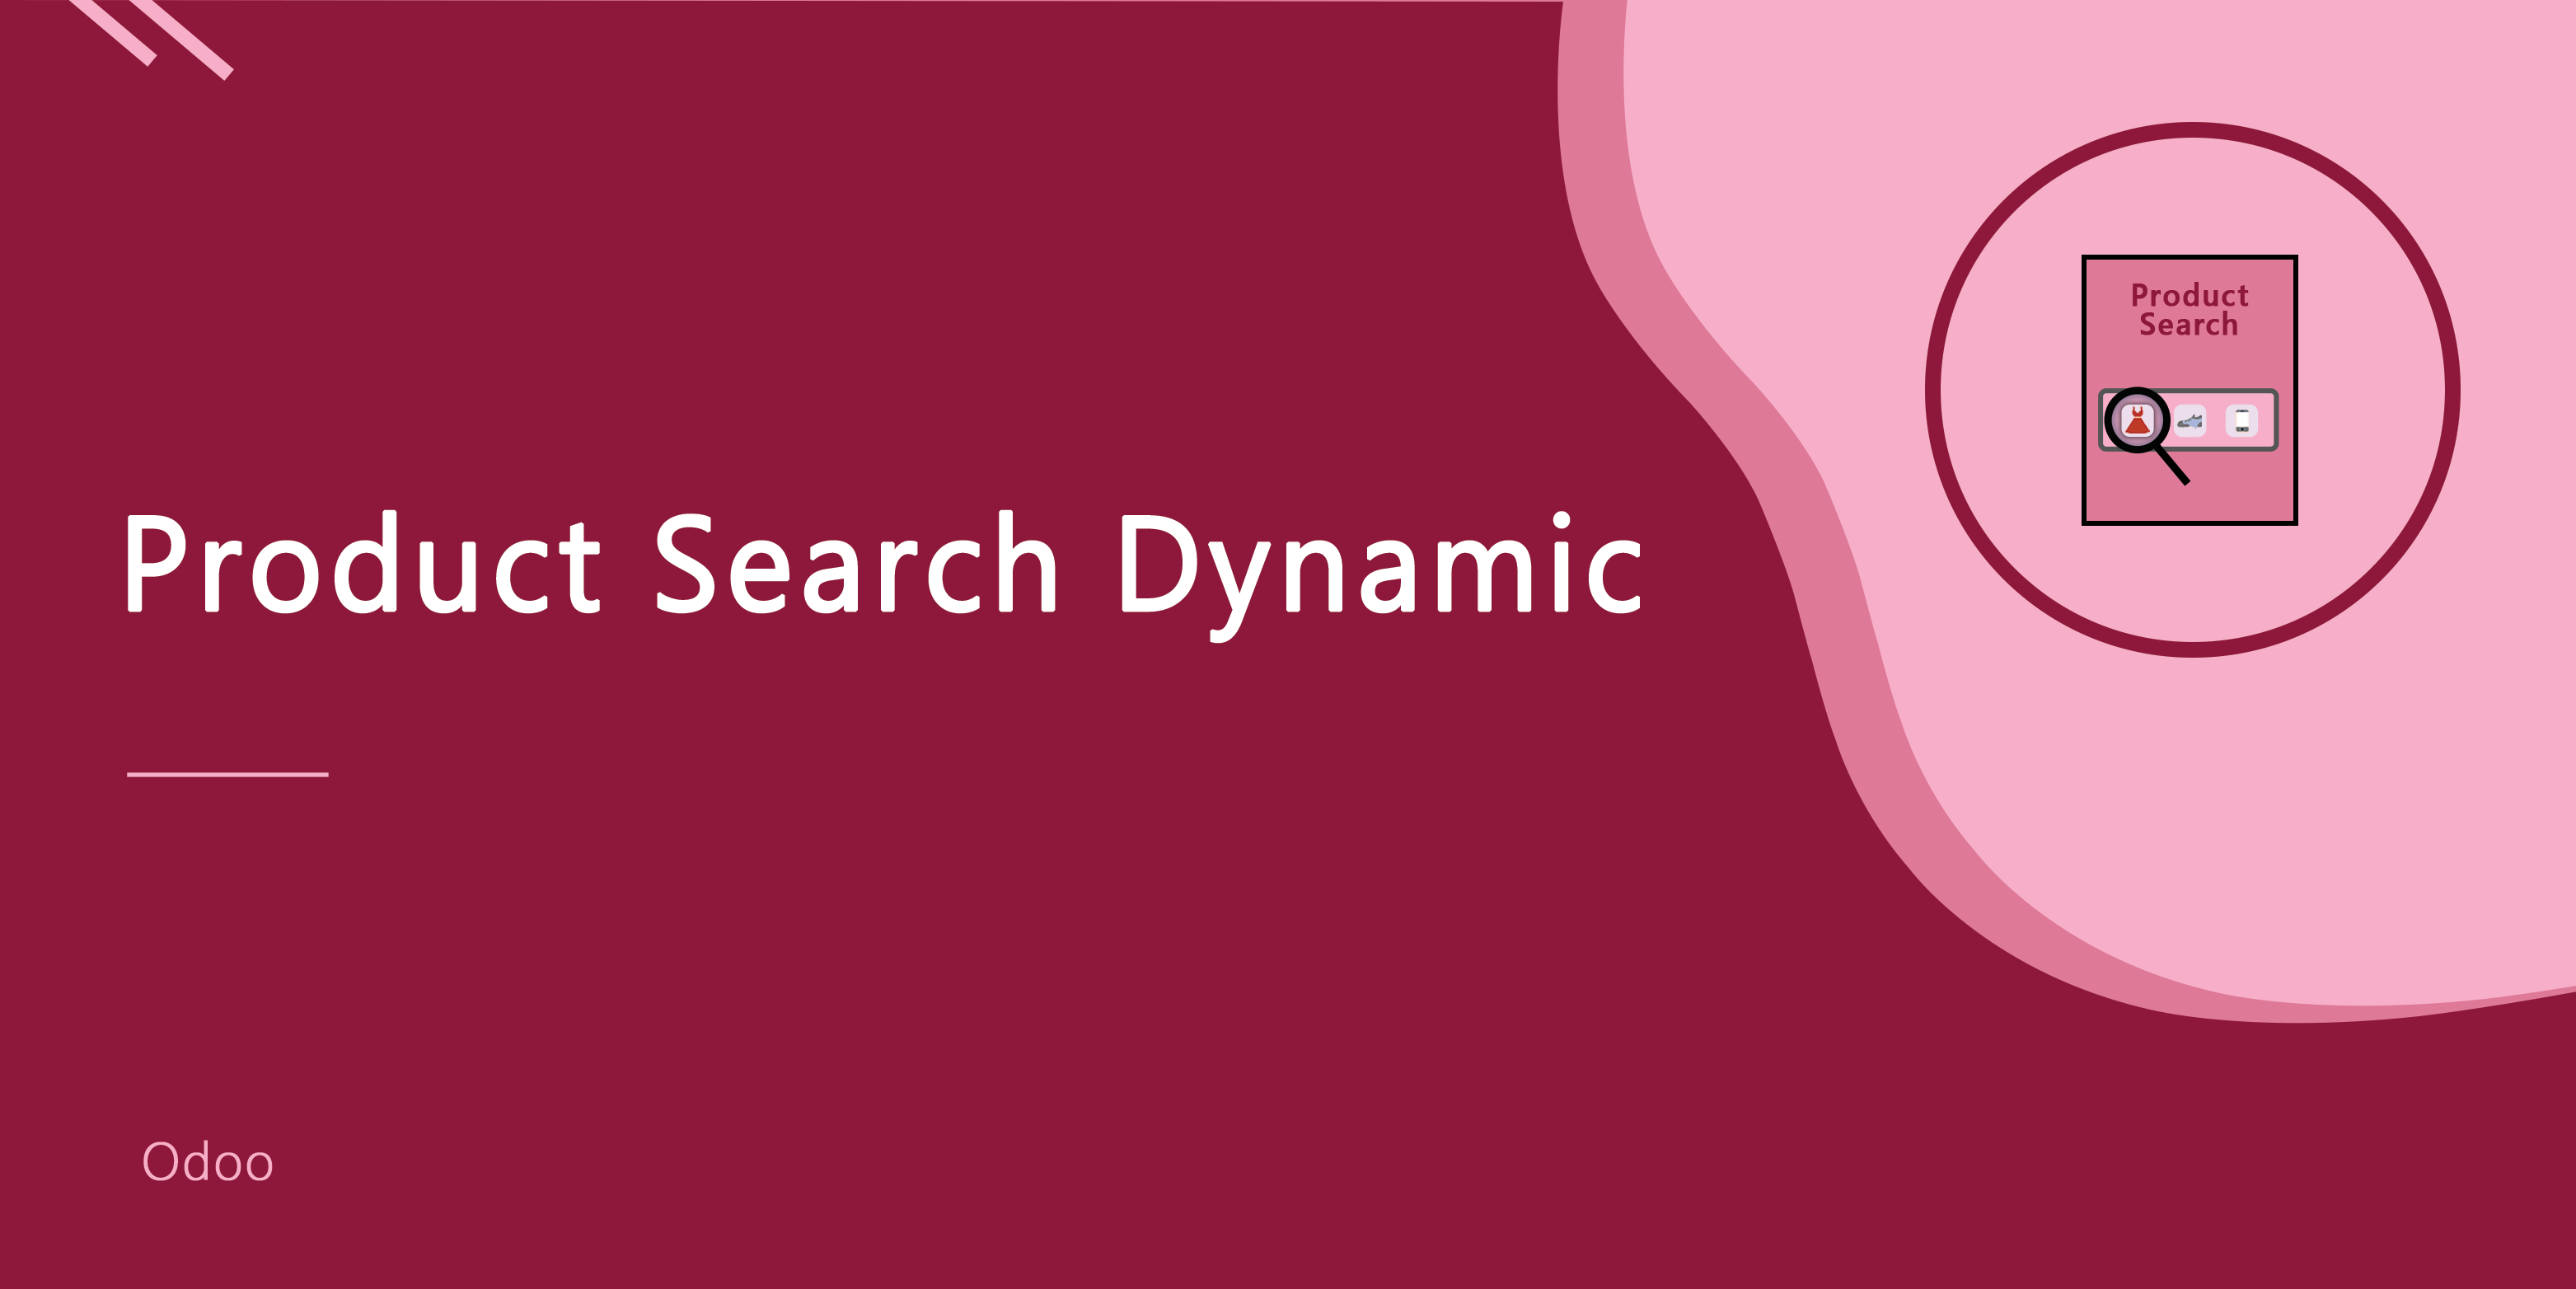 Product Search Dynamic